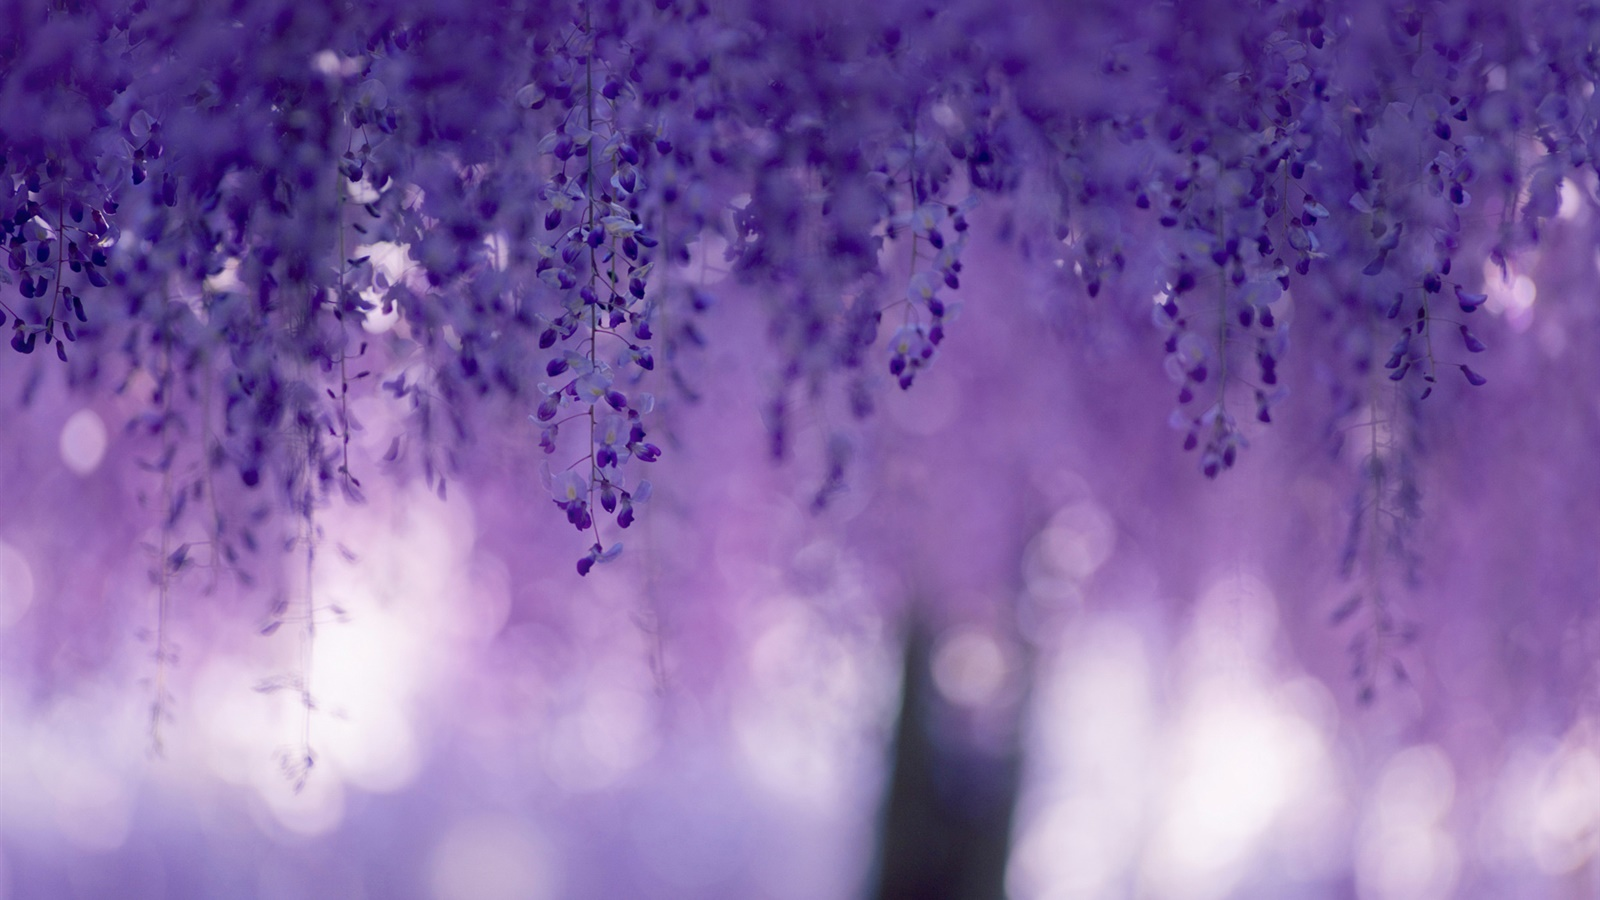 Wisteria, purple flowers, curtains 1600x900 wallpaper